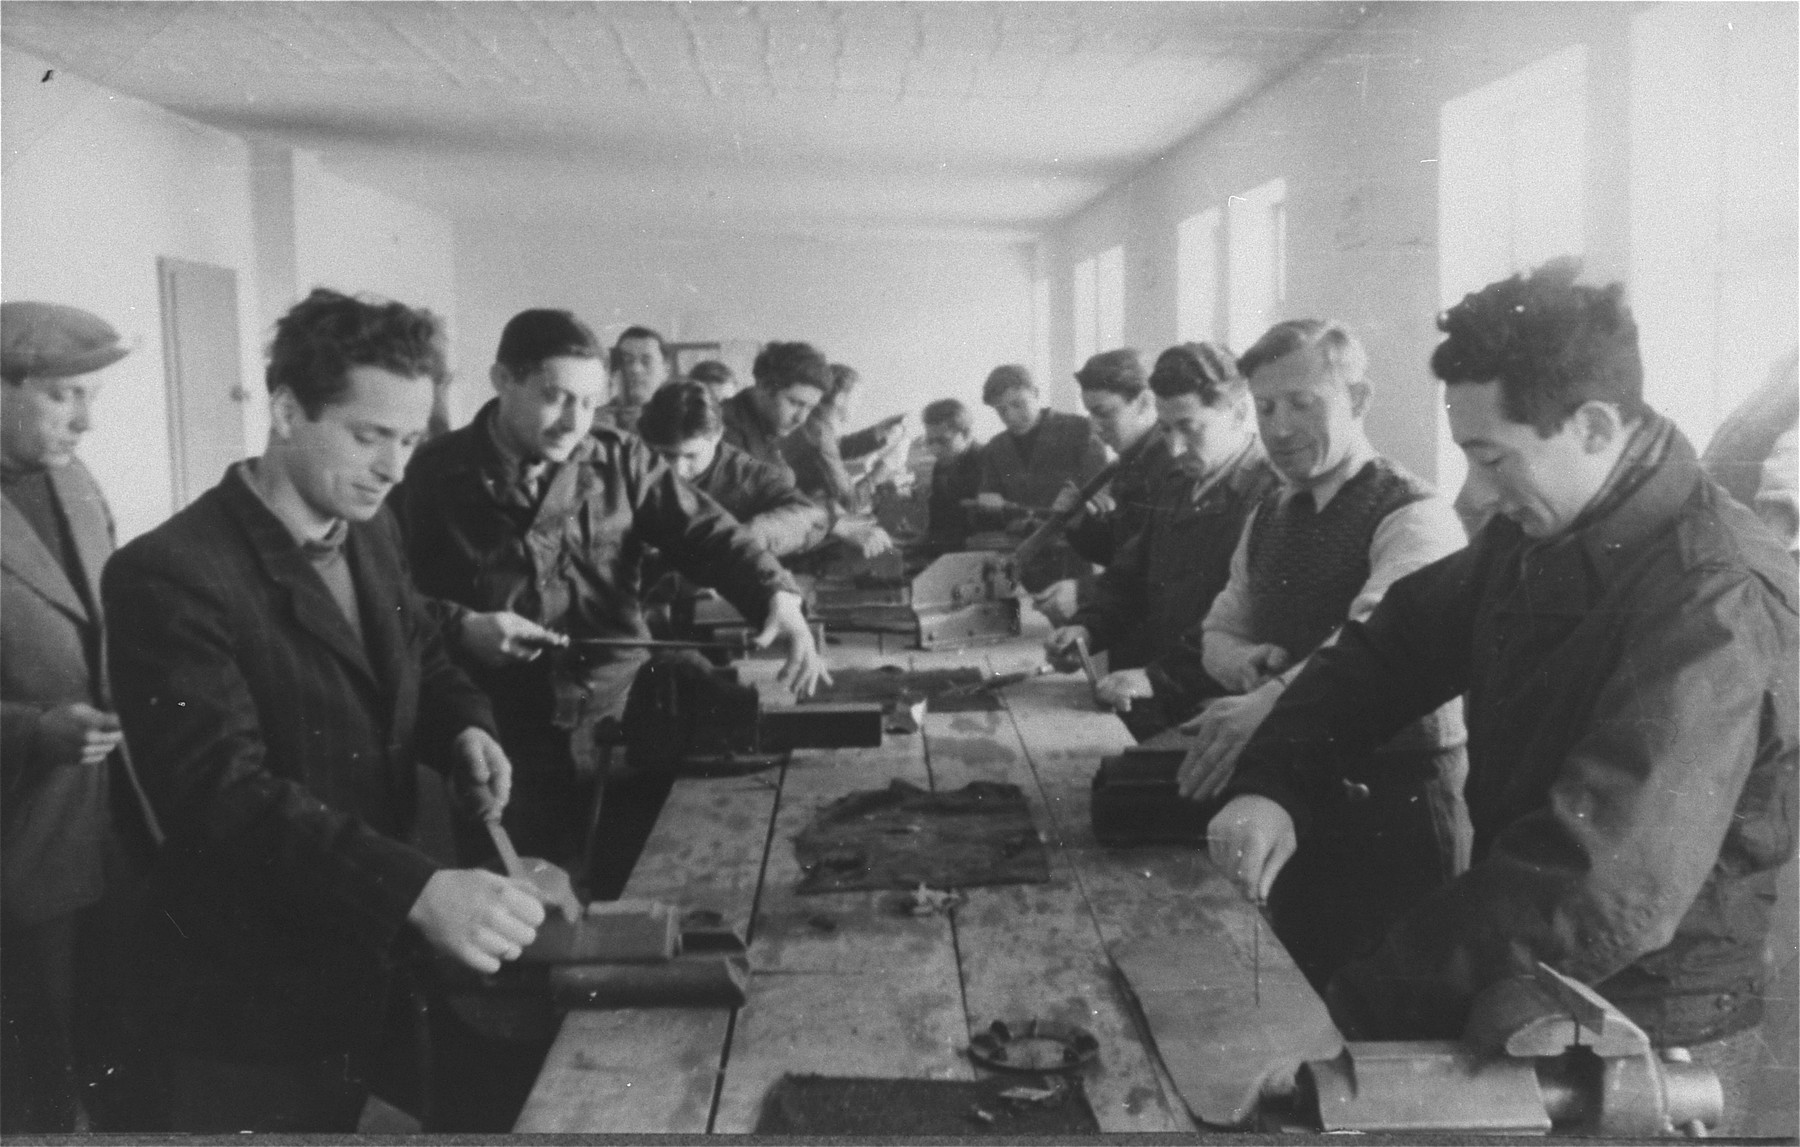 A goup of men practice carpentry in an ORT vocational school in the Zeilsheim displaced persons' camp.